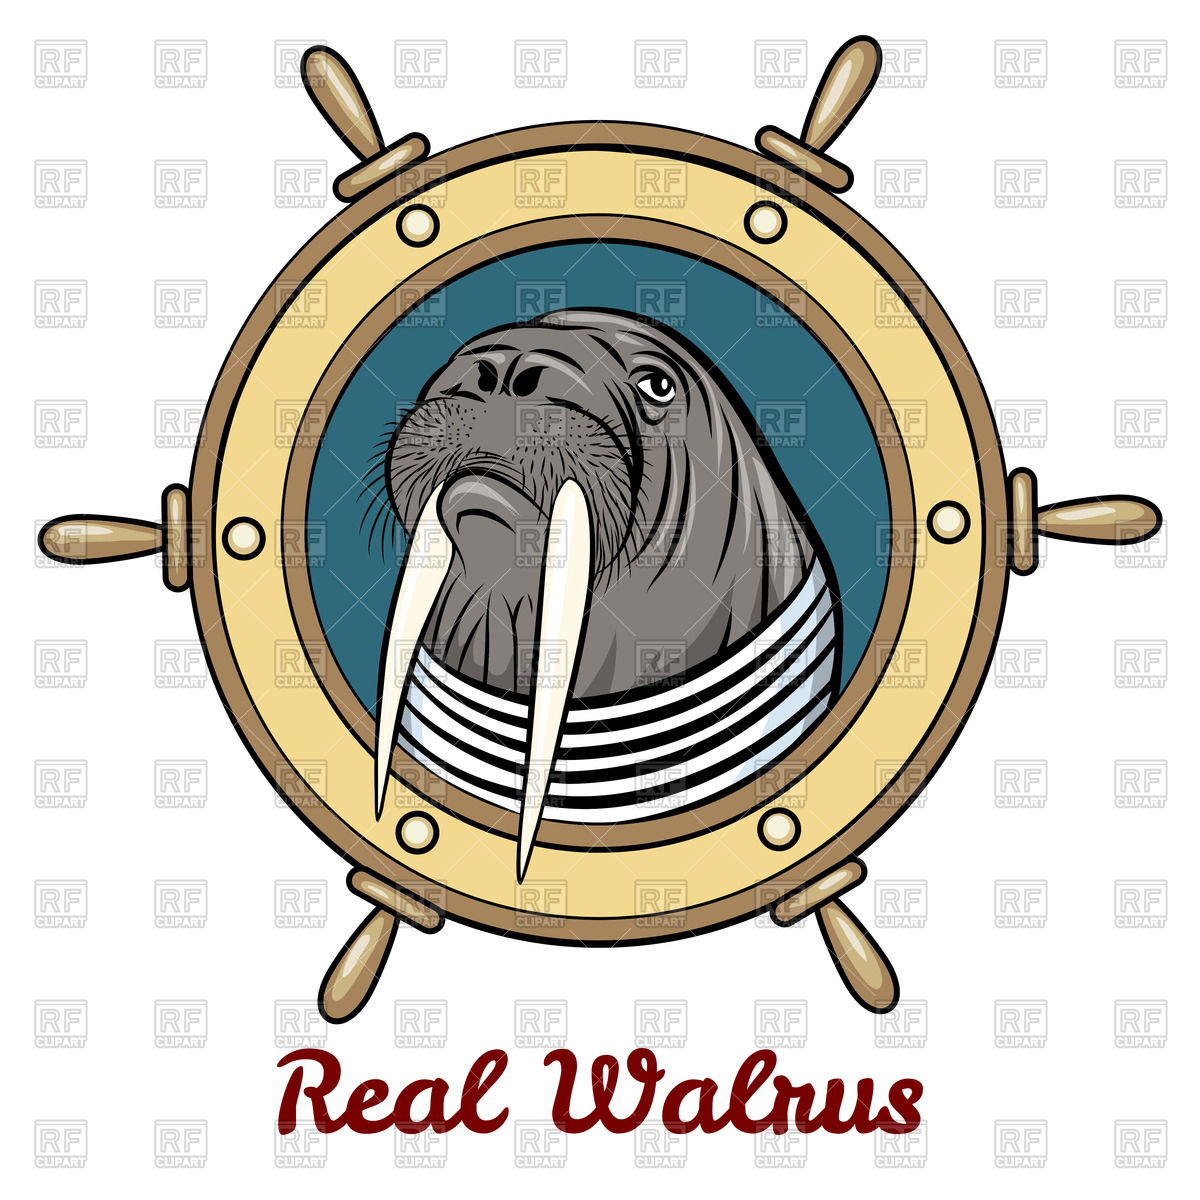 1200x1200 Portrait Of Walrus In Seaman Shirt Inside Steering Wheel Royalty